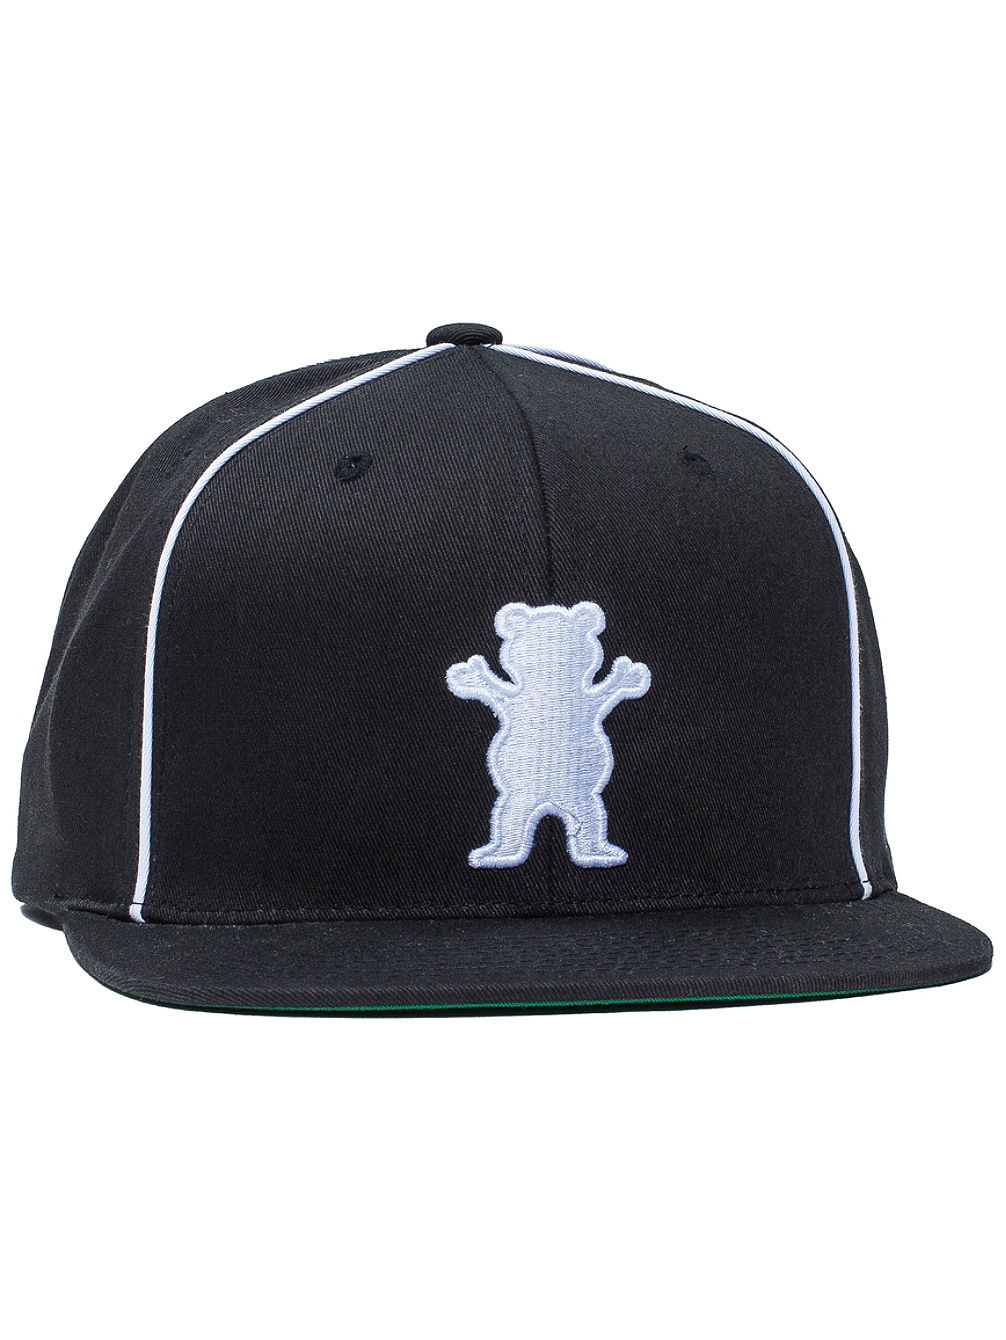 142fafca9435d Buy Grizzly Ys Town Cap online at blue-tomato.com